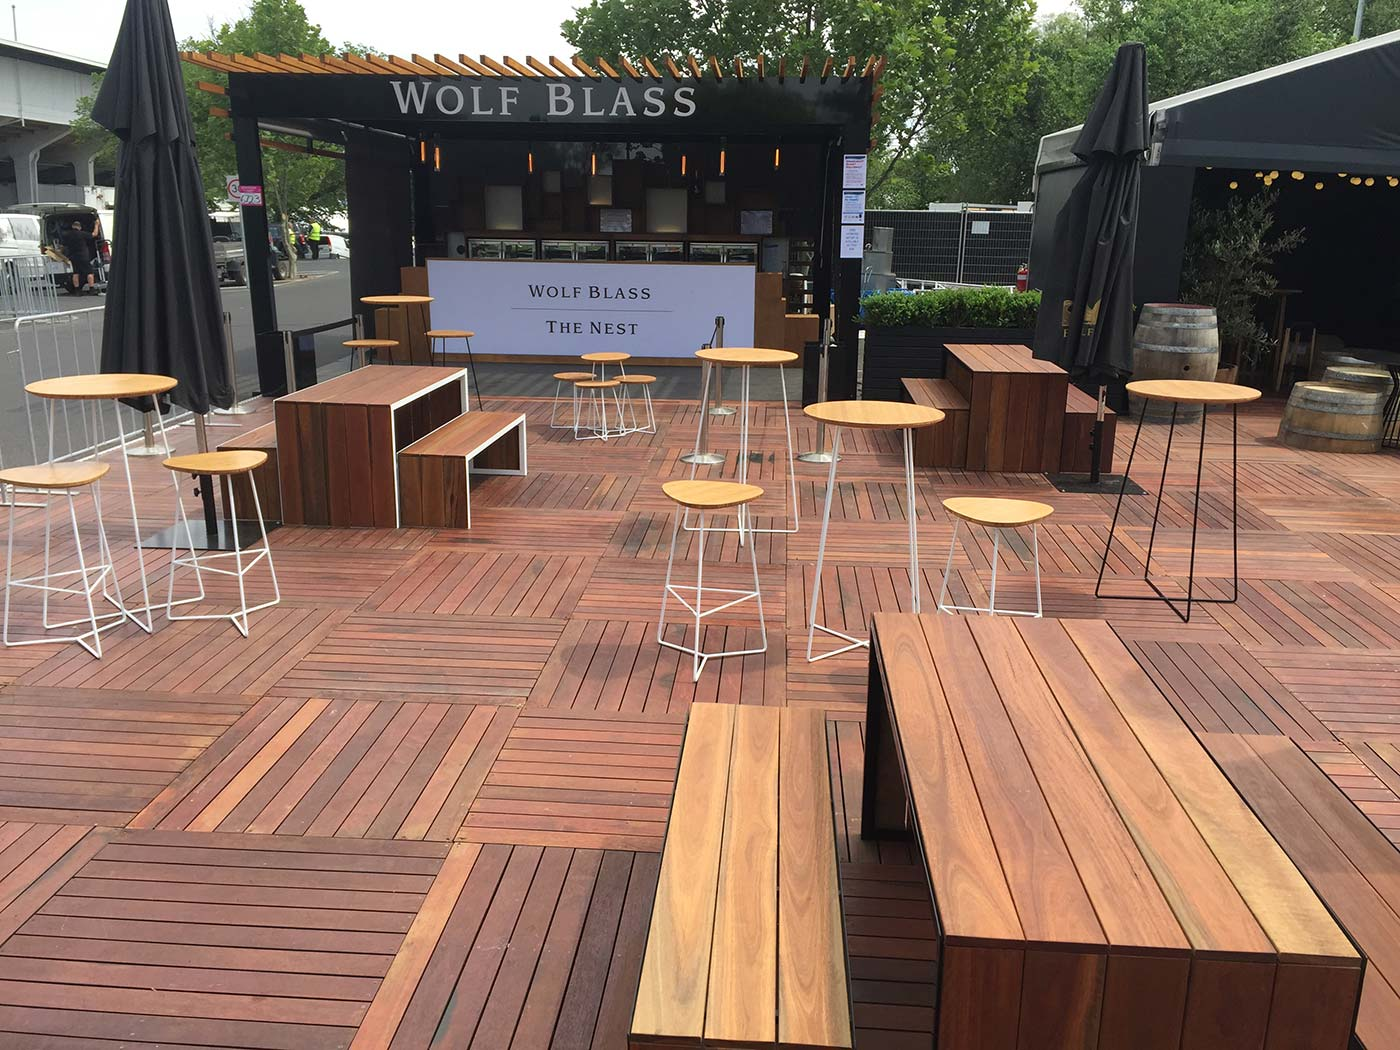 Wolf-Blass-The-Nest-Shipping-Container-Bar-8